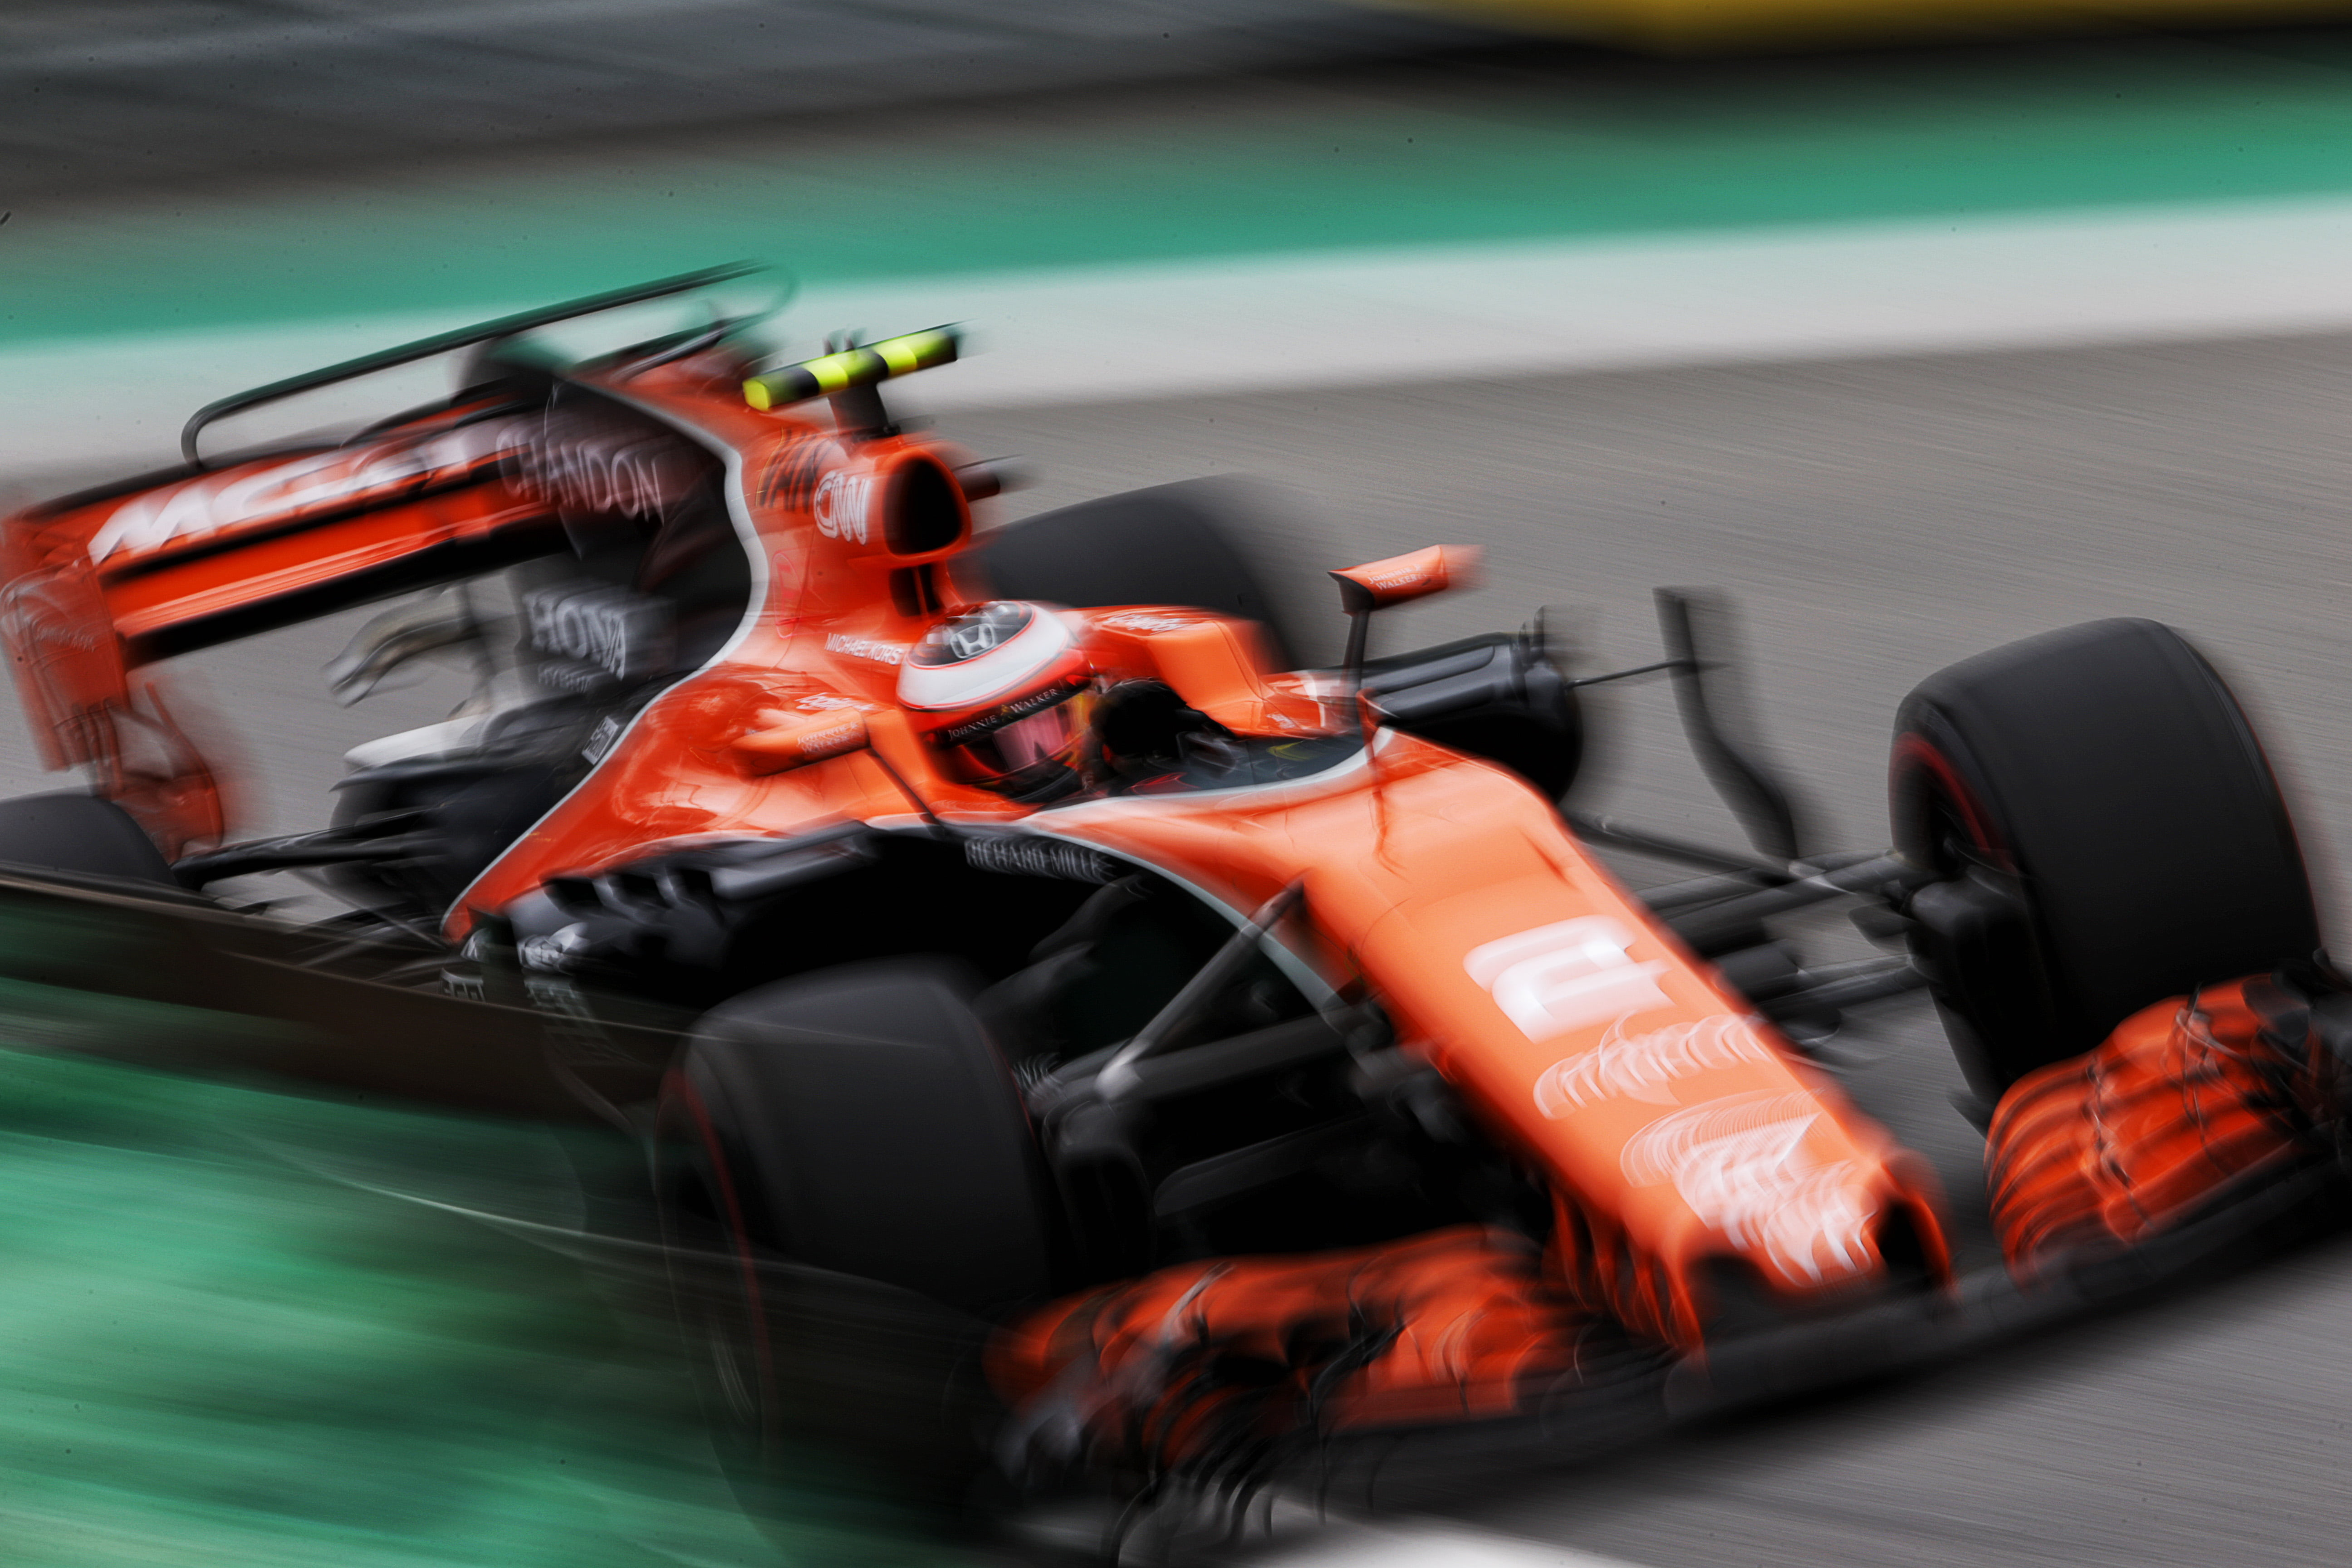 Formula One World Championship 2017, Round 19, Brazilian Grand Prix, Sao Paulo, Brazil, Saturday 11 November 2017 – Stoffel Vandoorne (BEL) McLaren MCL32.